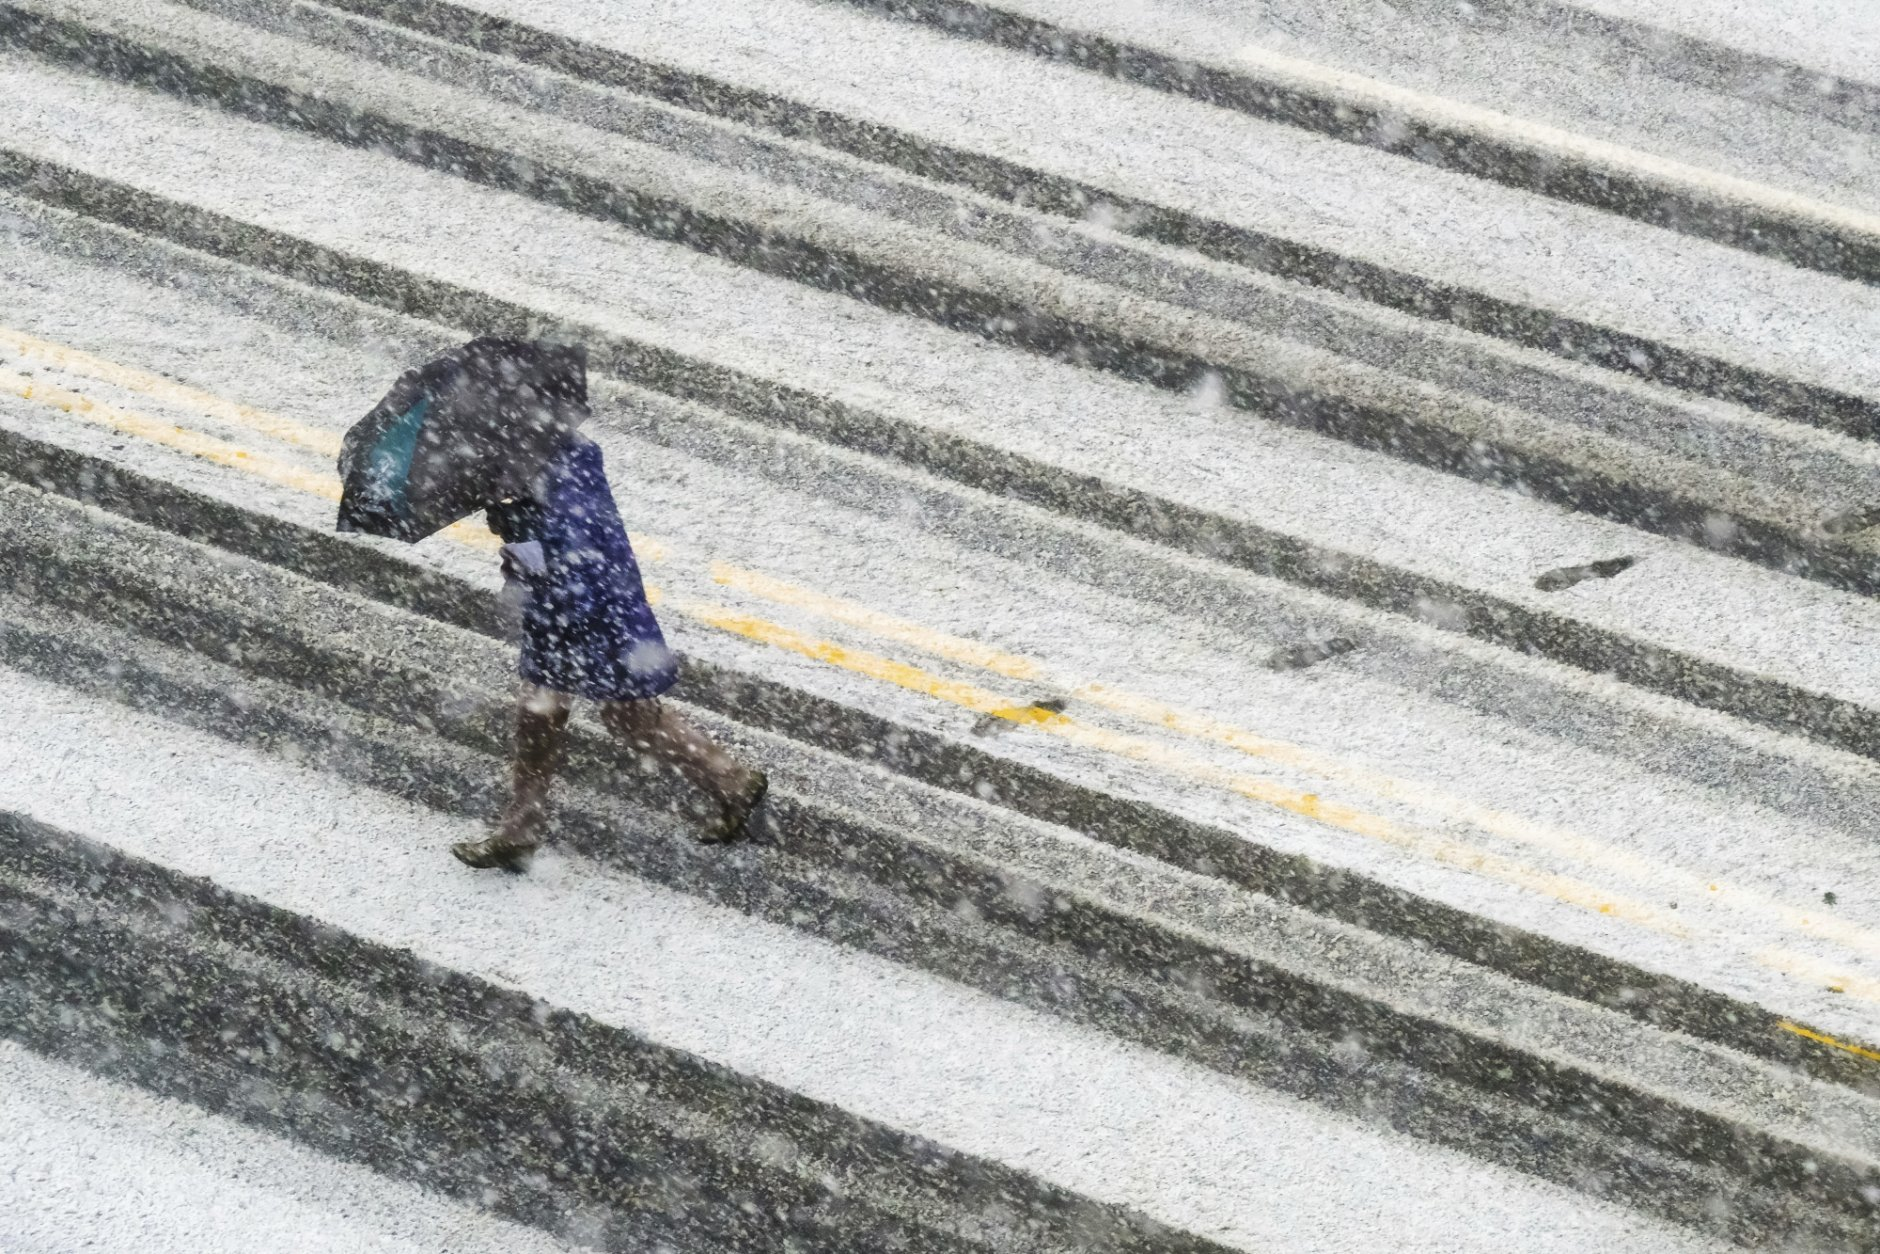 A pedestrian races across the snow covered and tire streaked street in Washington during a spring storm, Wednesday, March 21, 2018. (AP Photo/J. David Ake)